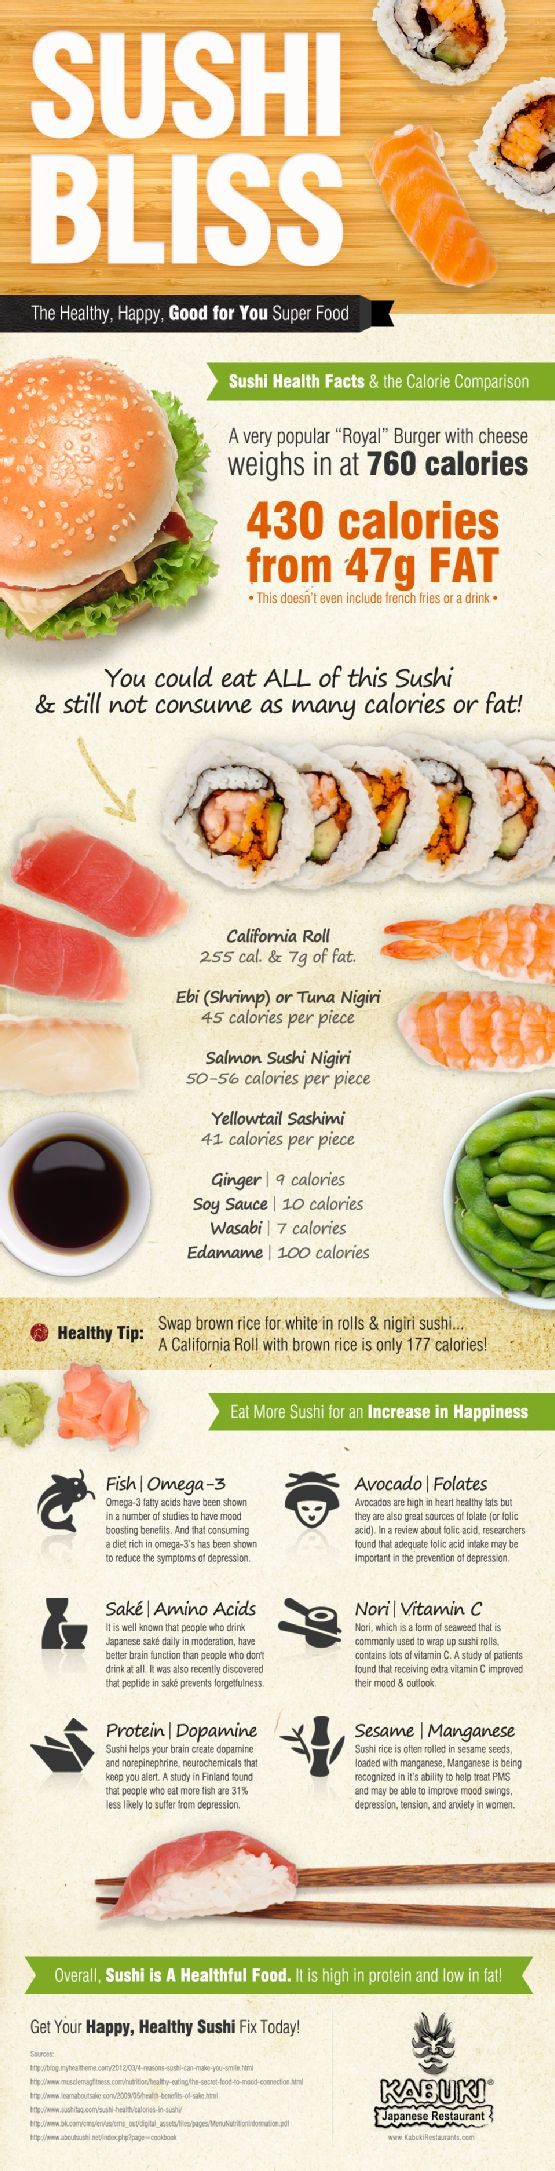 Check out this great infographic from Kabuki that outlines the health benefits of sushi. Tips on ordering the healthiest sushi and fun facts like the cancer-fighting powers of ginger.  Study up and then visit Kabuki this fall at The Collection.